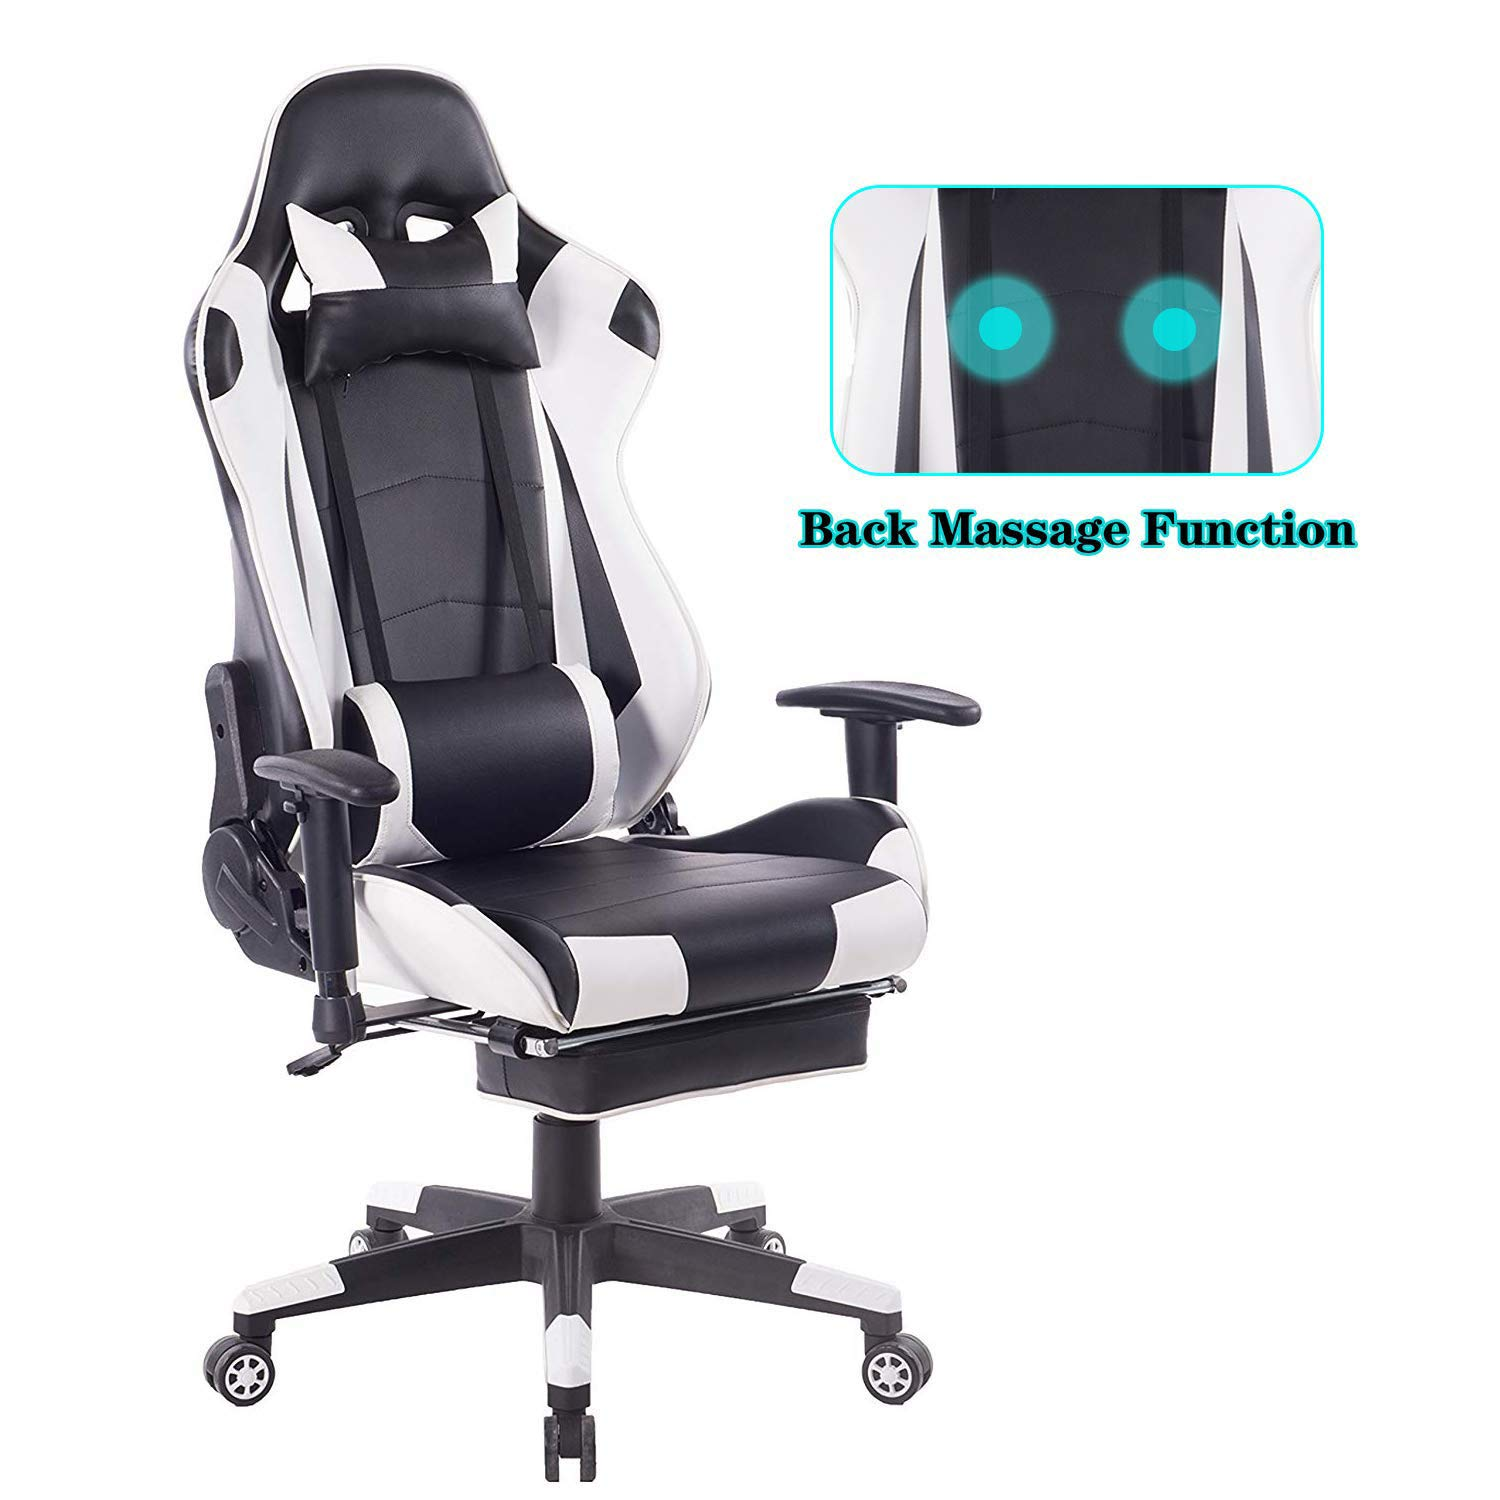 HEALGEN Back Massage Gaming Chair with Footrest,PC Computer Video Game Racing Gamer Chair High Back Reclining Executive Ergonomic Office Desk Chair with Headrest Lumbar Support Cushion GM002(White)